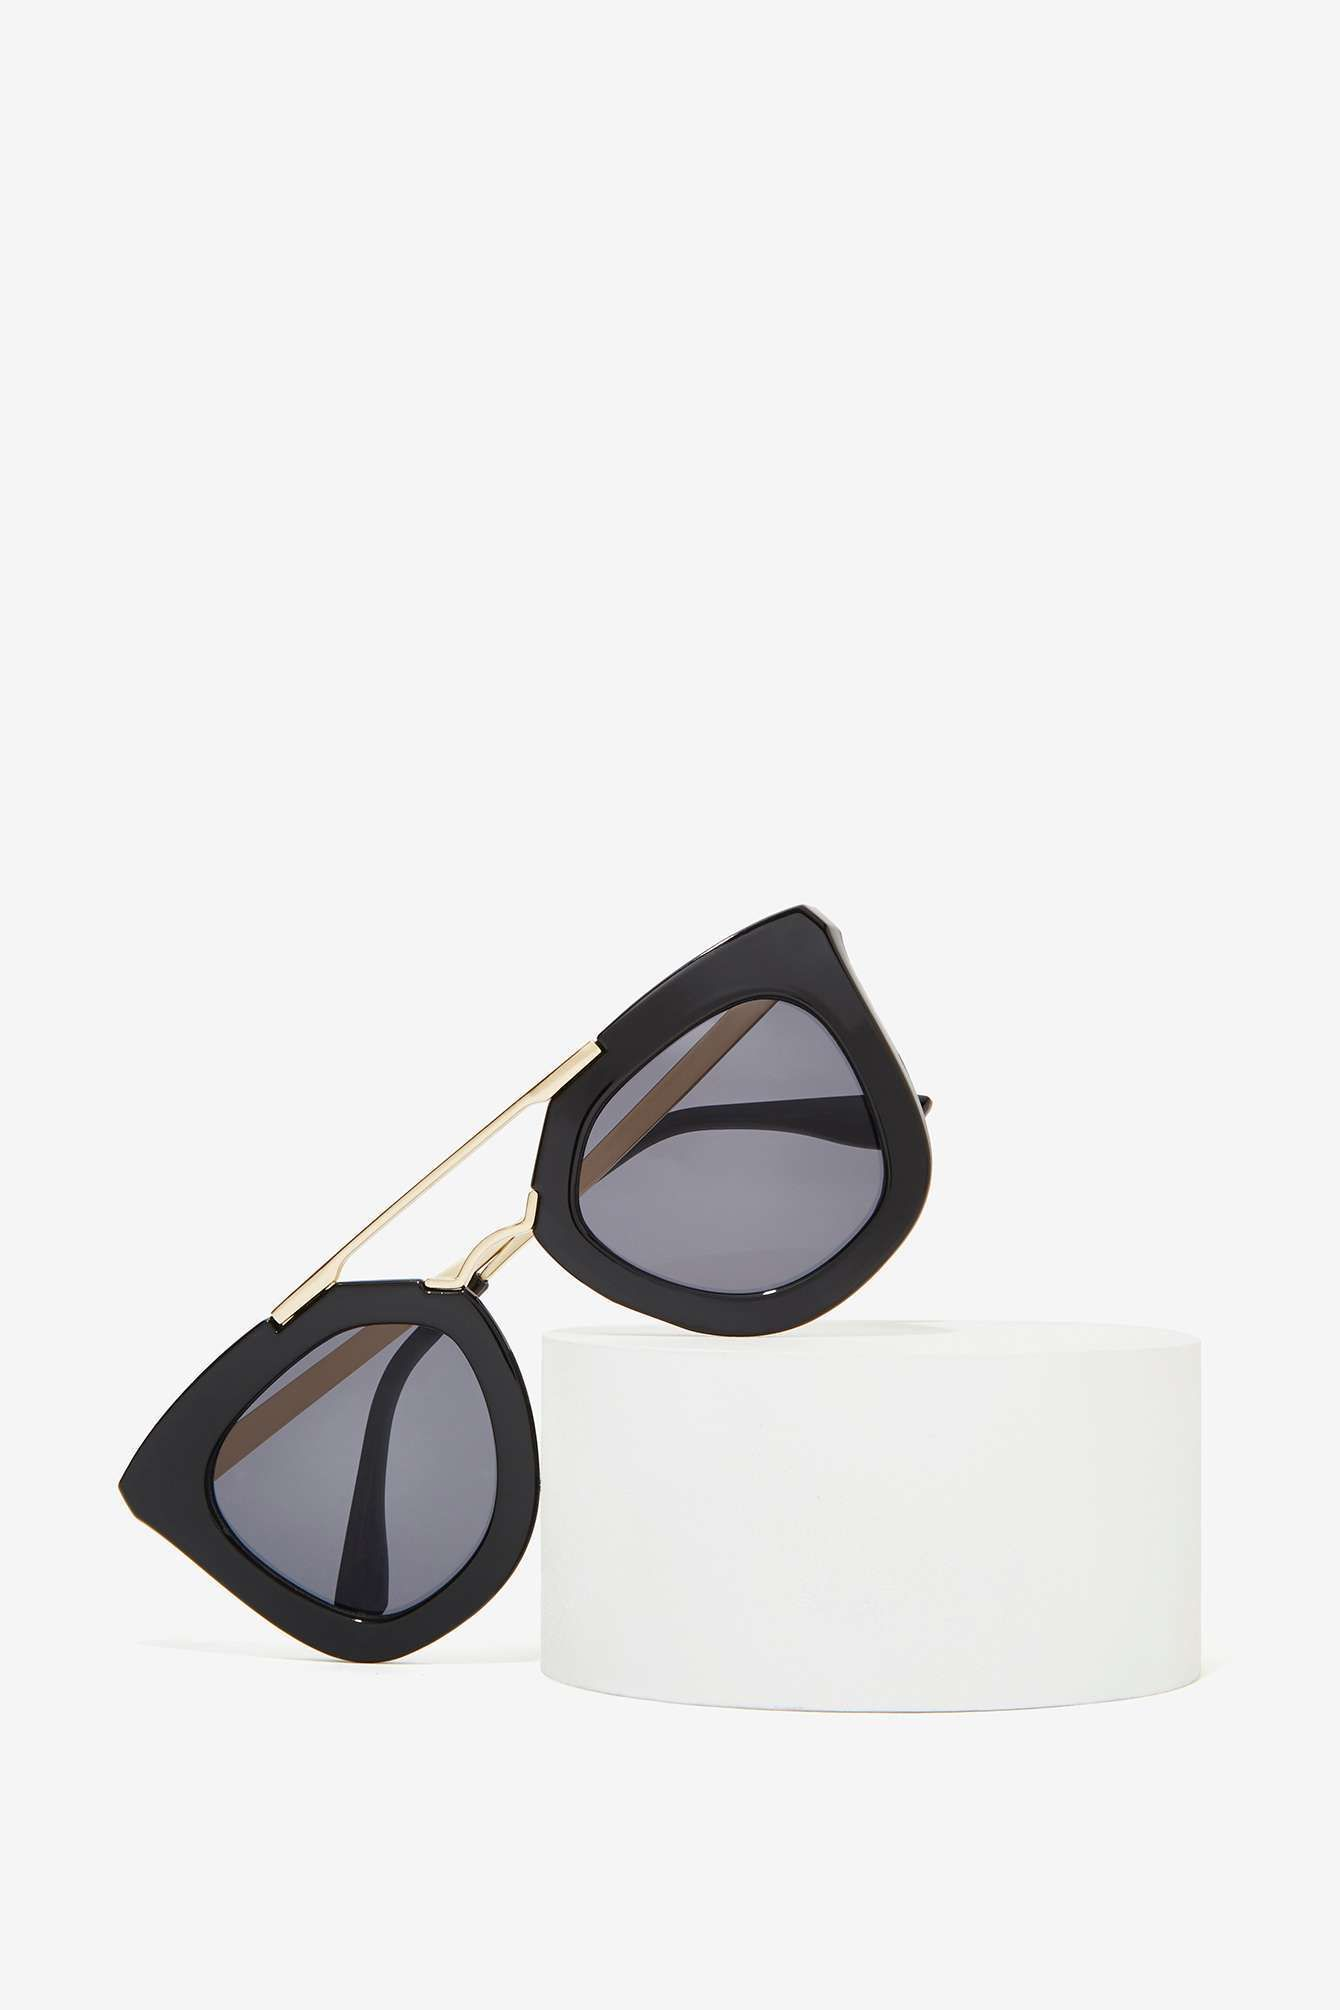 39c247395 I am really feeling these Bueller II Shades from Nasty Gal. Best early 2015  purchase. #glassesobsessed